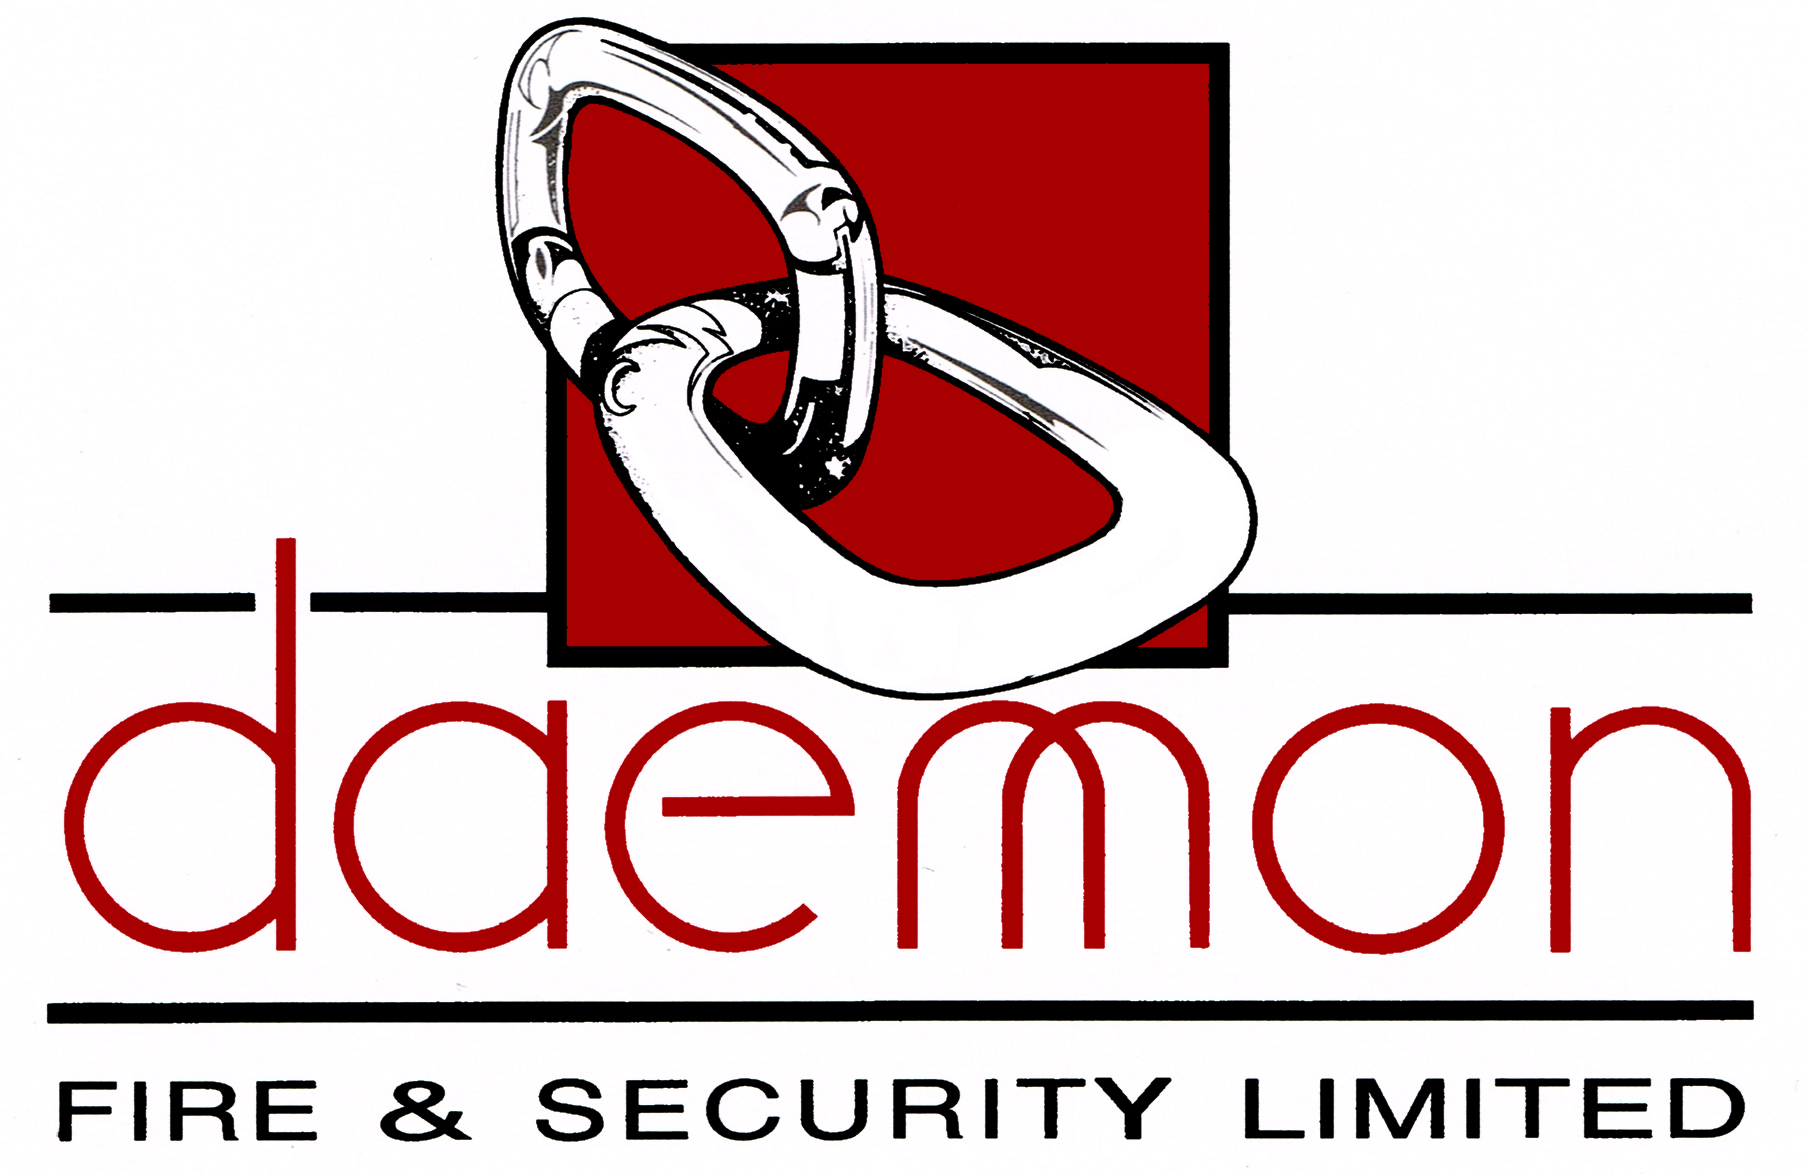 Daemon Fire & Security Limited